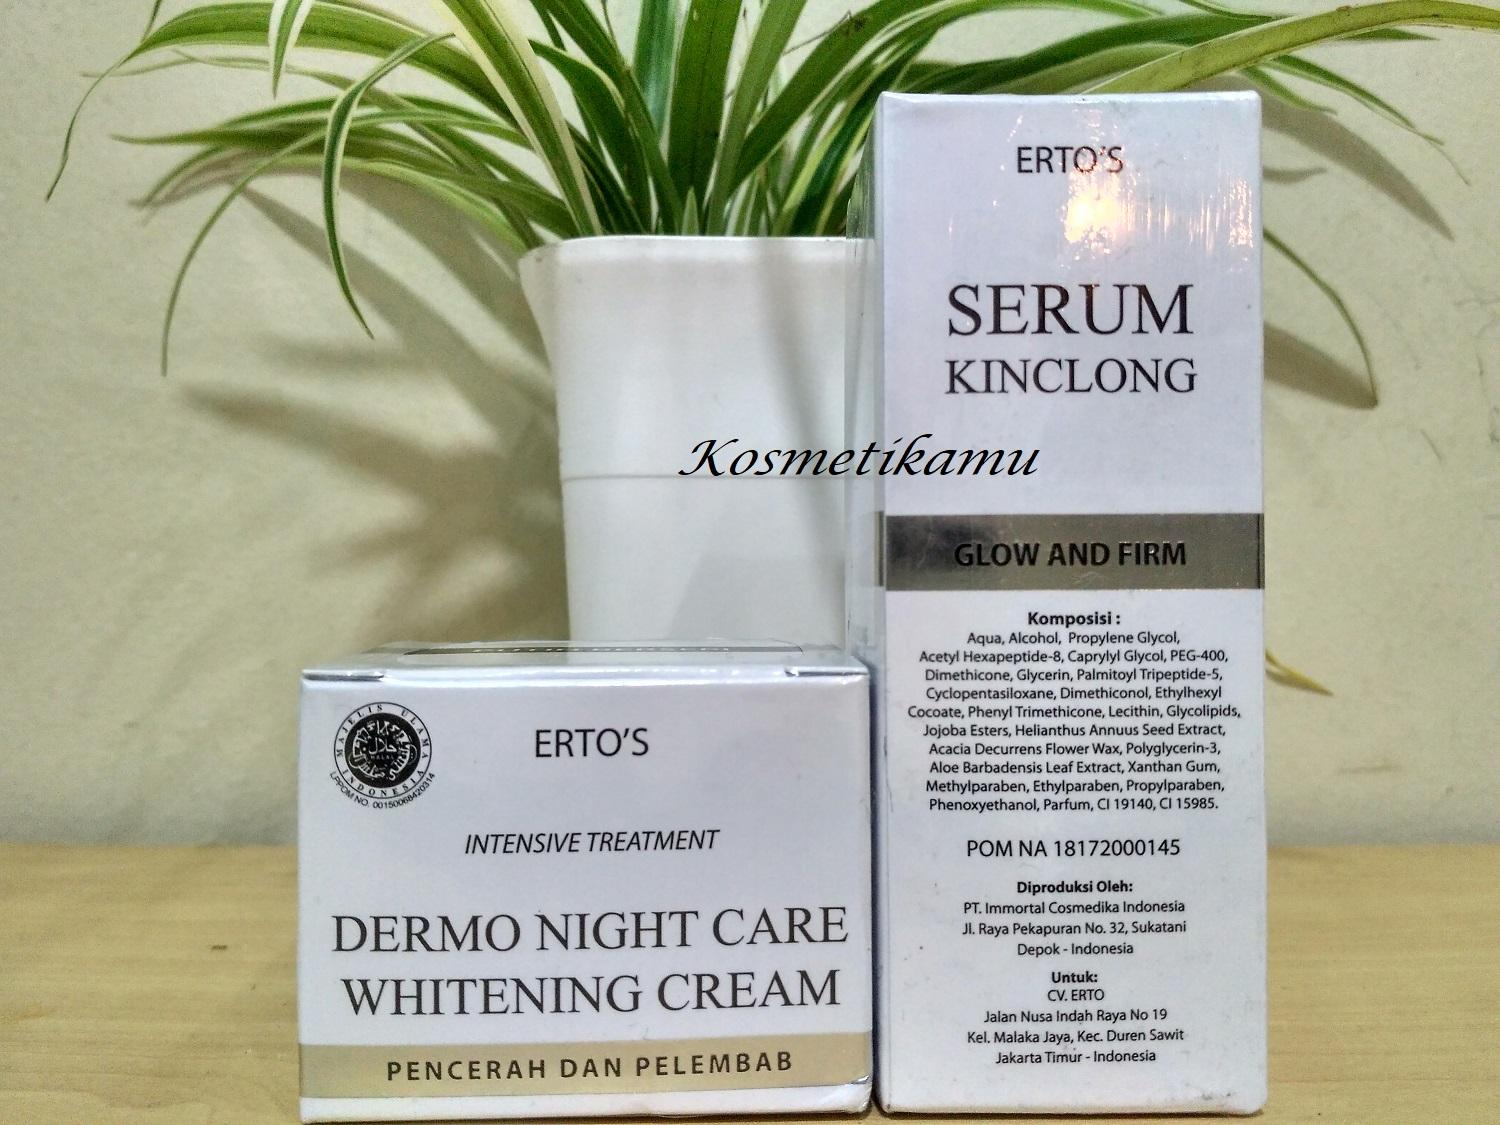 Kelebihan Ertos Paket Night Cream Serum Kinclong Original Terkini